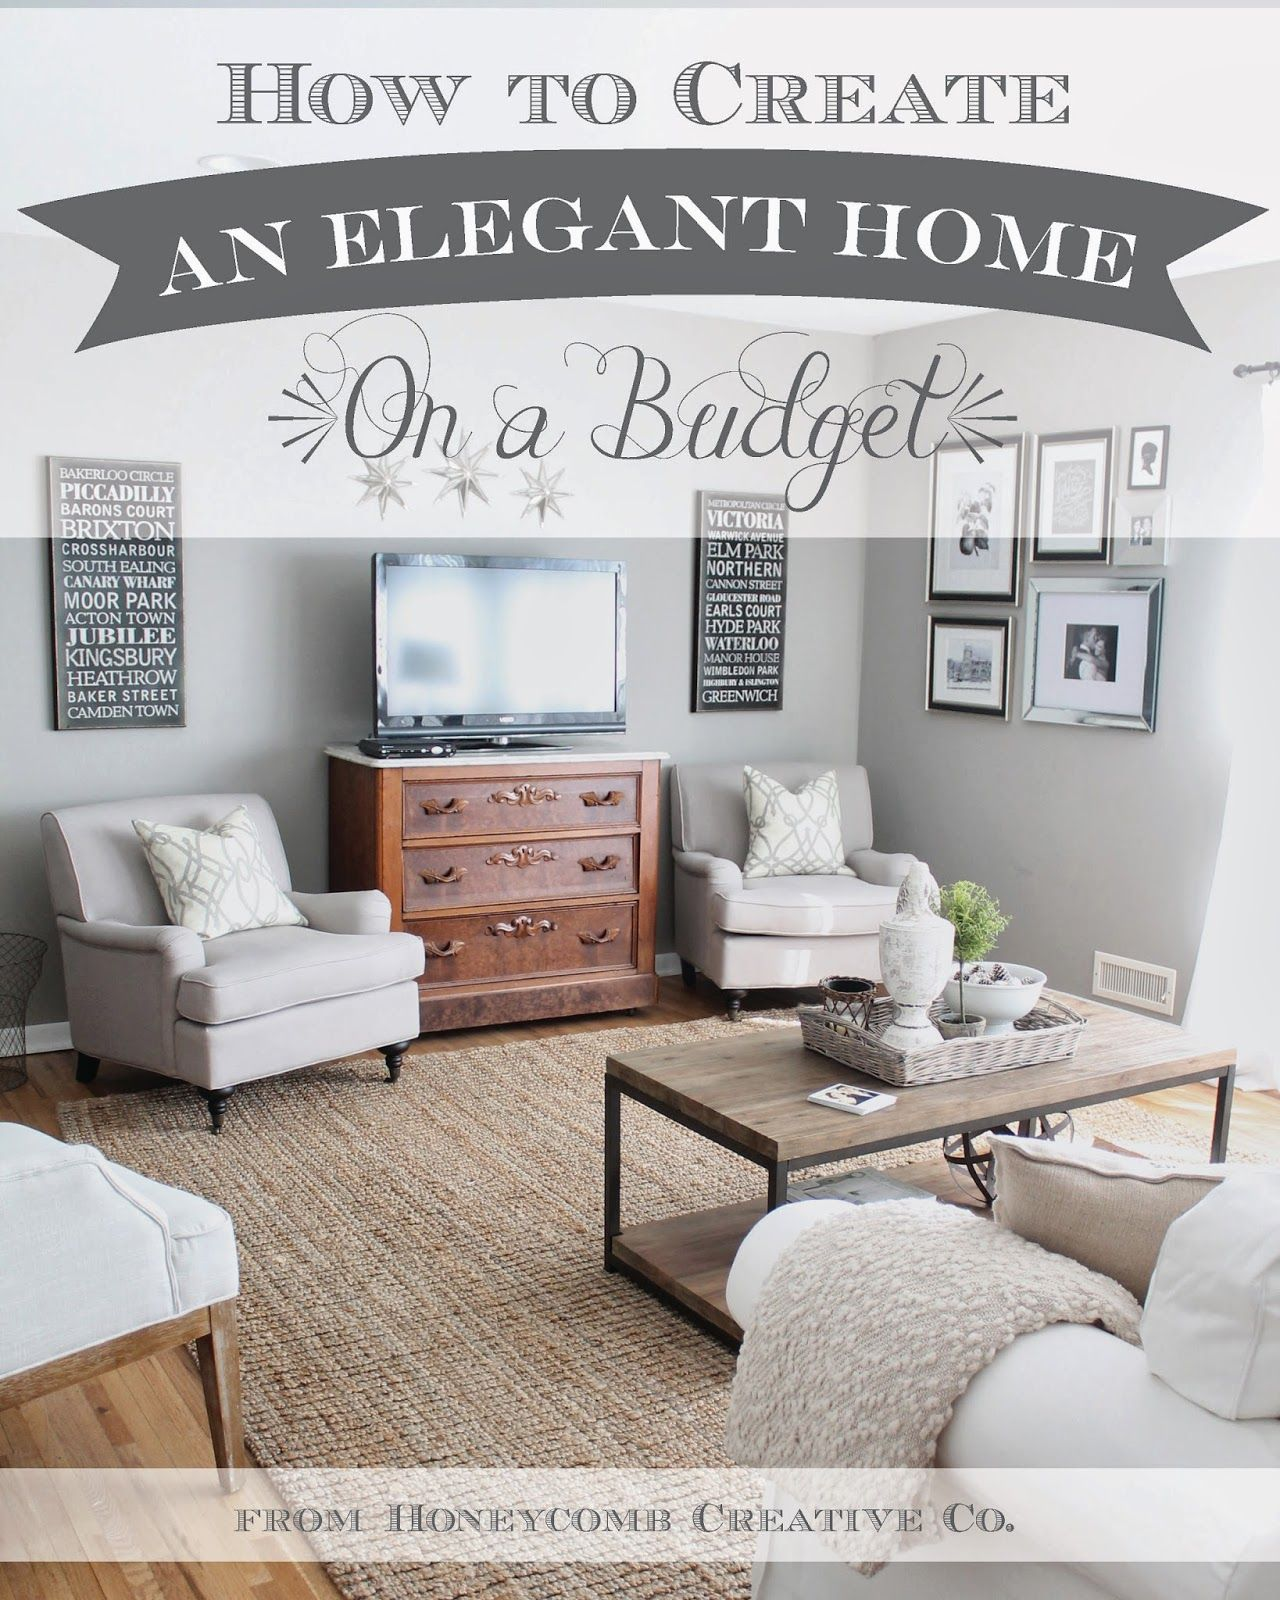 How To Create An Elegant Home On A Budget: 7 Tips & Tricks